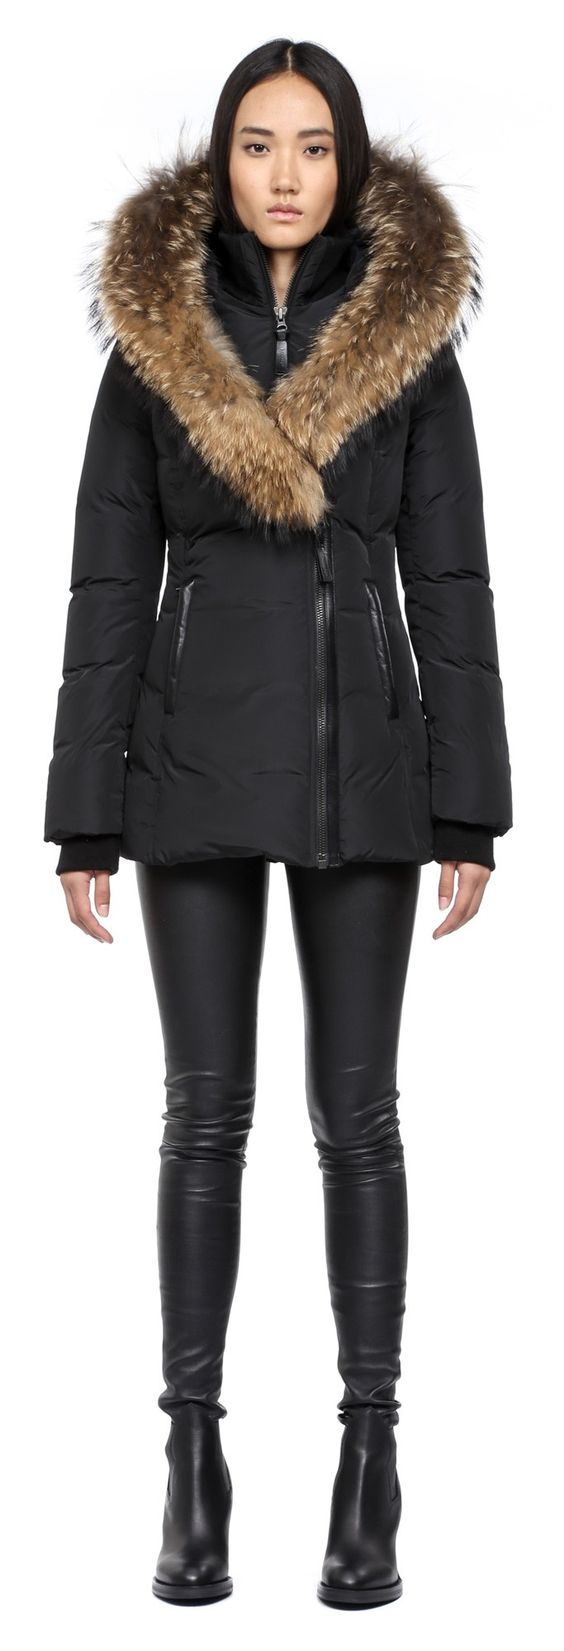 Mackage Adali F4 Black Fitted Winter Down Coat With Fur